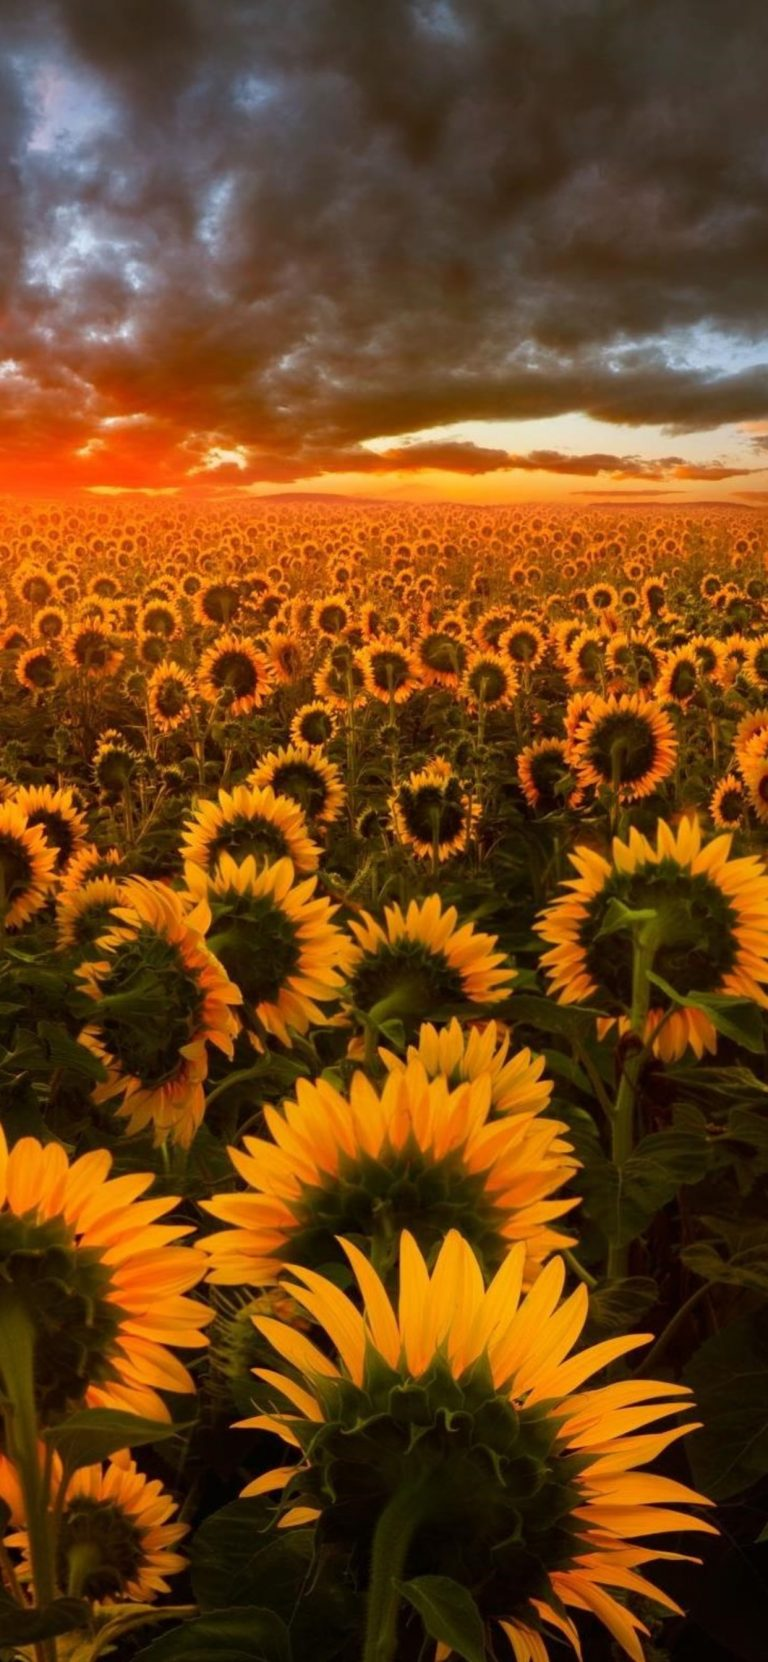 sunflower wallpaper 71